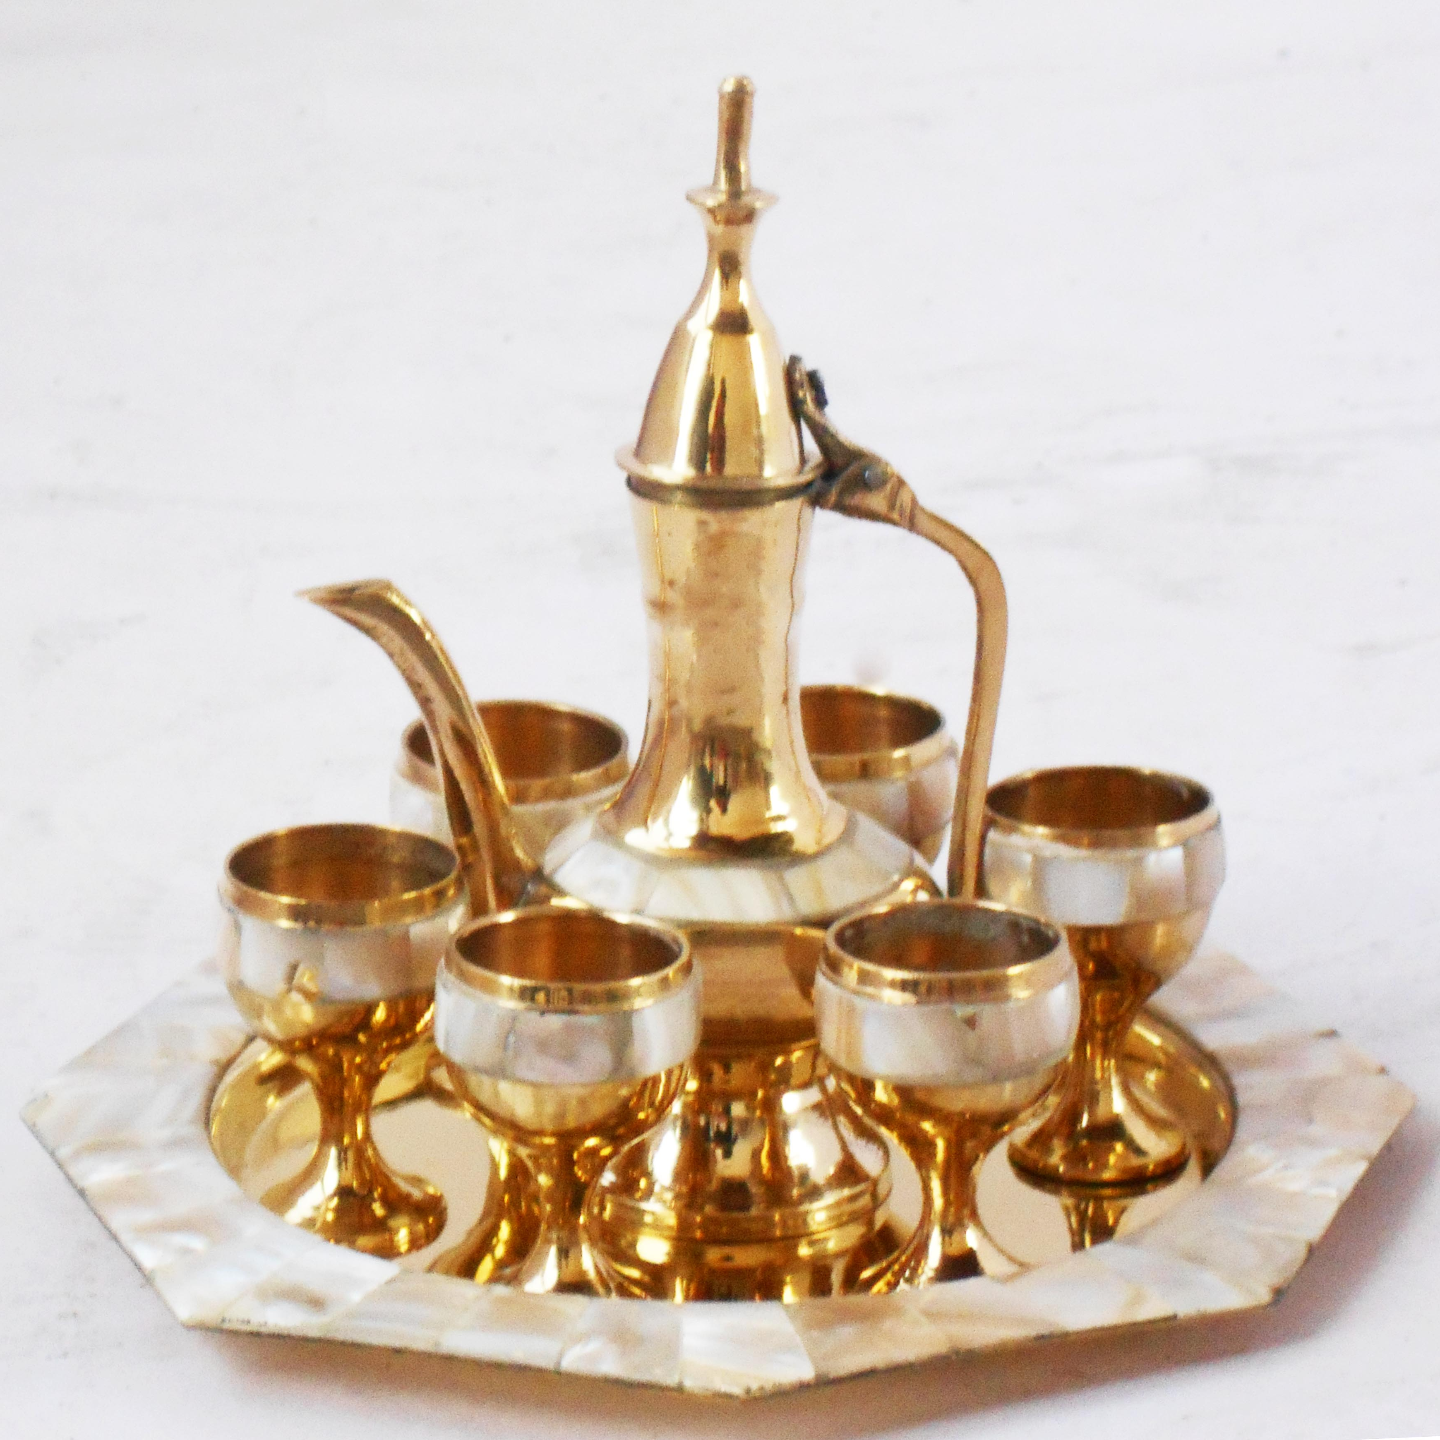 Brass Wine Set With Seep Work 6 Glass 1 Surahi 1 Tray Miniature Toy For Children Playing (Z363 C)